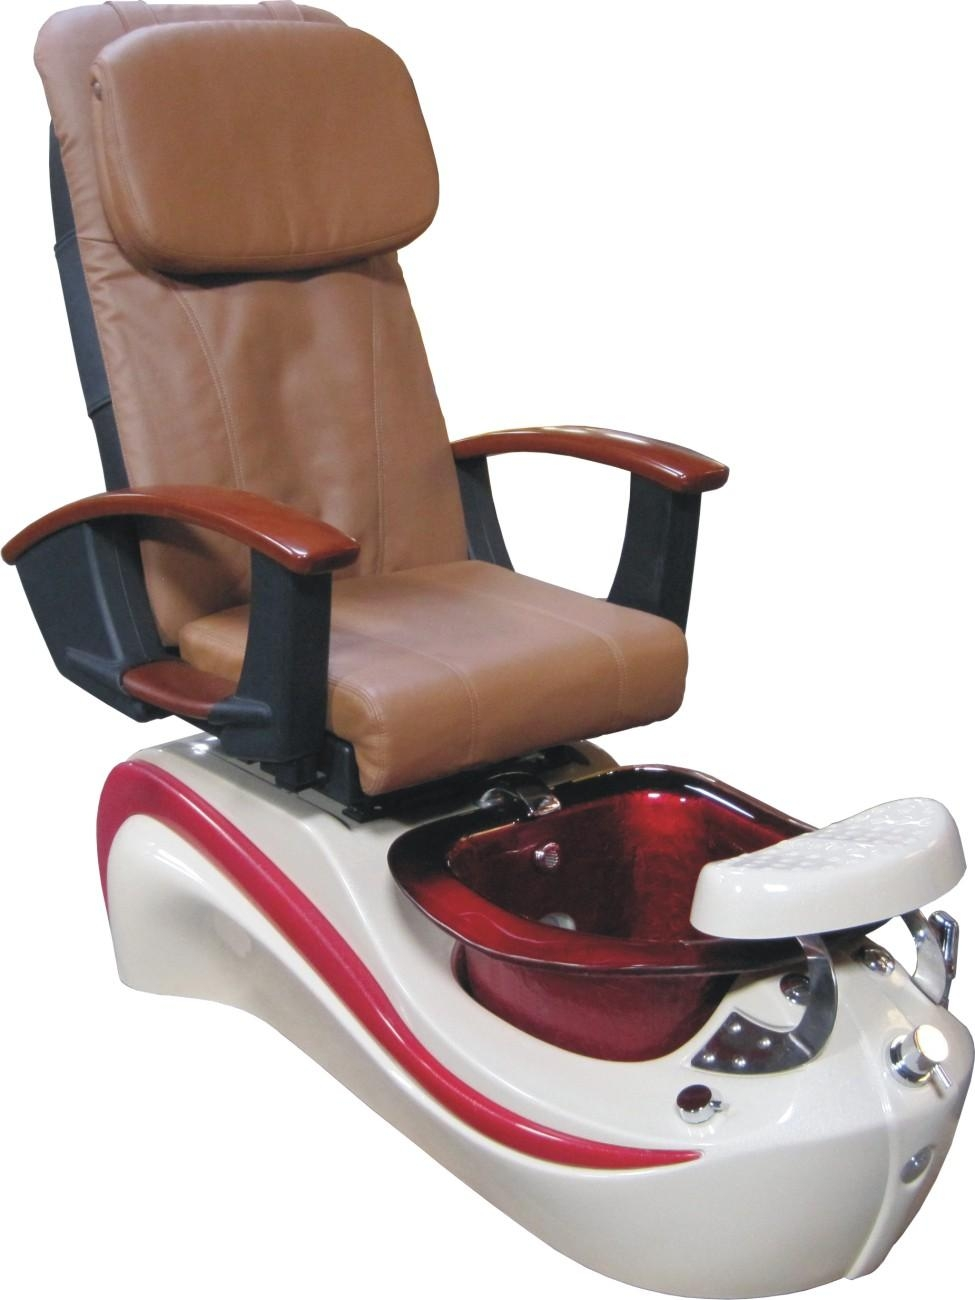 2016 Wholesale Cappuccino Pu Leather Spa Chair,t4 Style Used Throughout Foot Massage Sofa Chairs (Image 1 of 20)